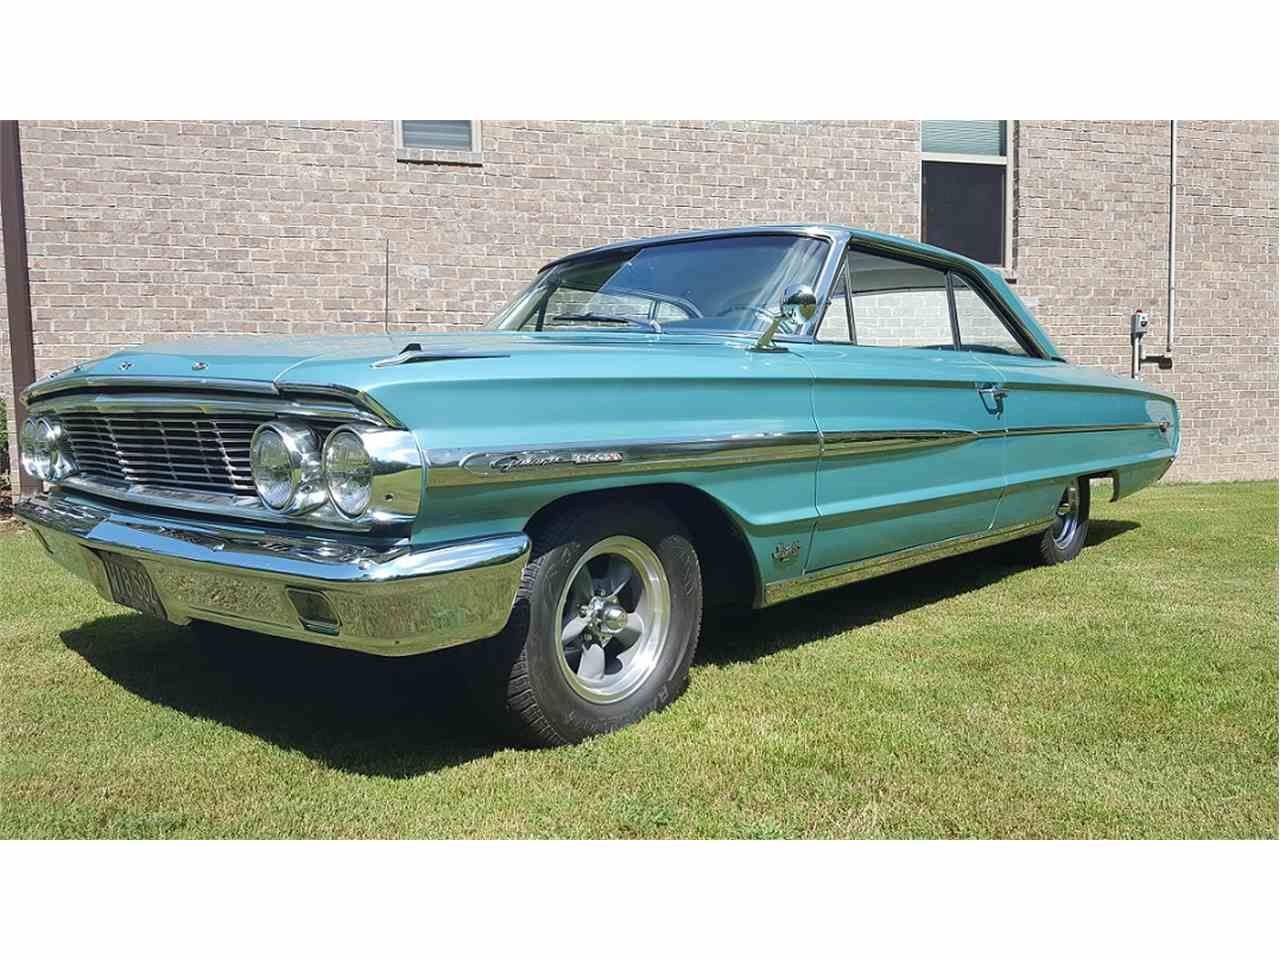 1964 Ford Galaxie 500 Xl For Sale Listing Id Cc 1002805 Classiccars Com Driveyourdream Ford Ford Galaxie 500 Galaxie 500 Ford Galaxie